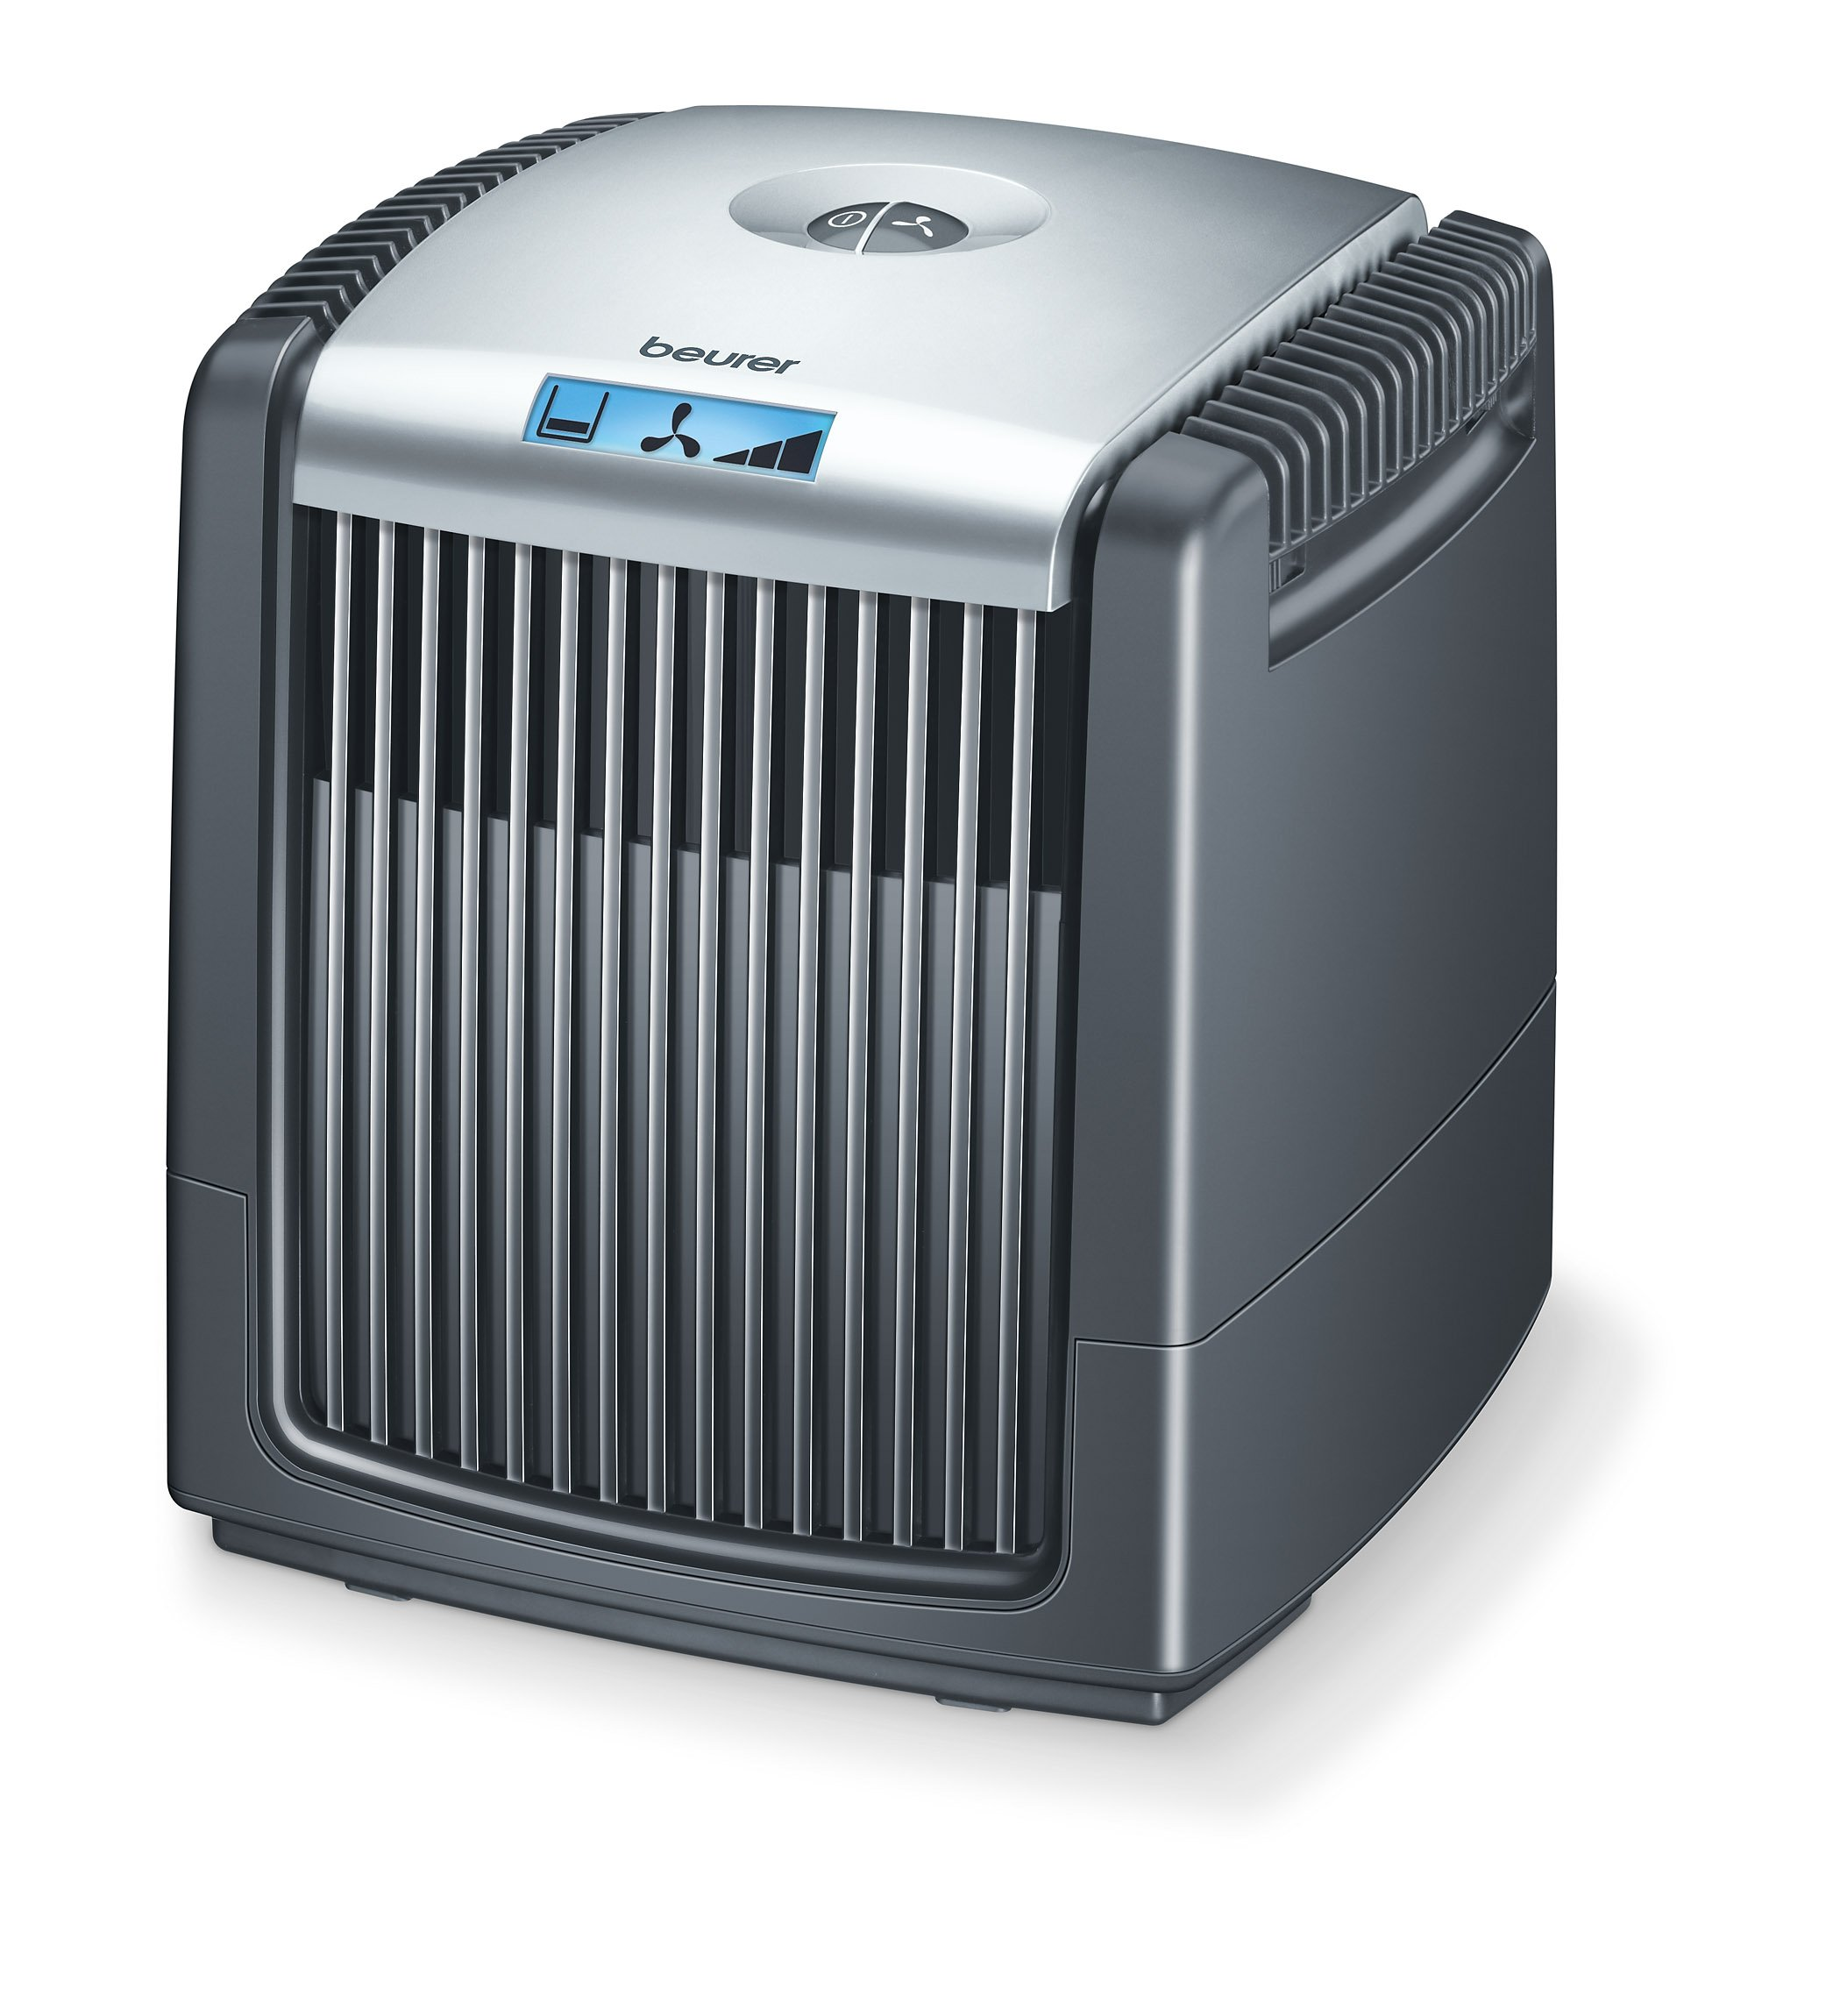 Beurer Airwasher and Air Humidifier, Air Purifier with Washable Filter for Clean Air, LW110 by Beurer North America